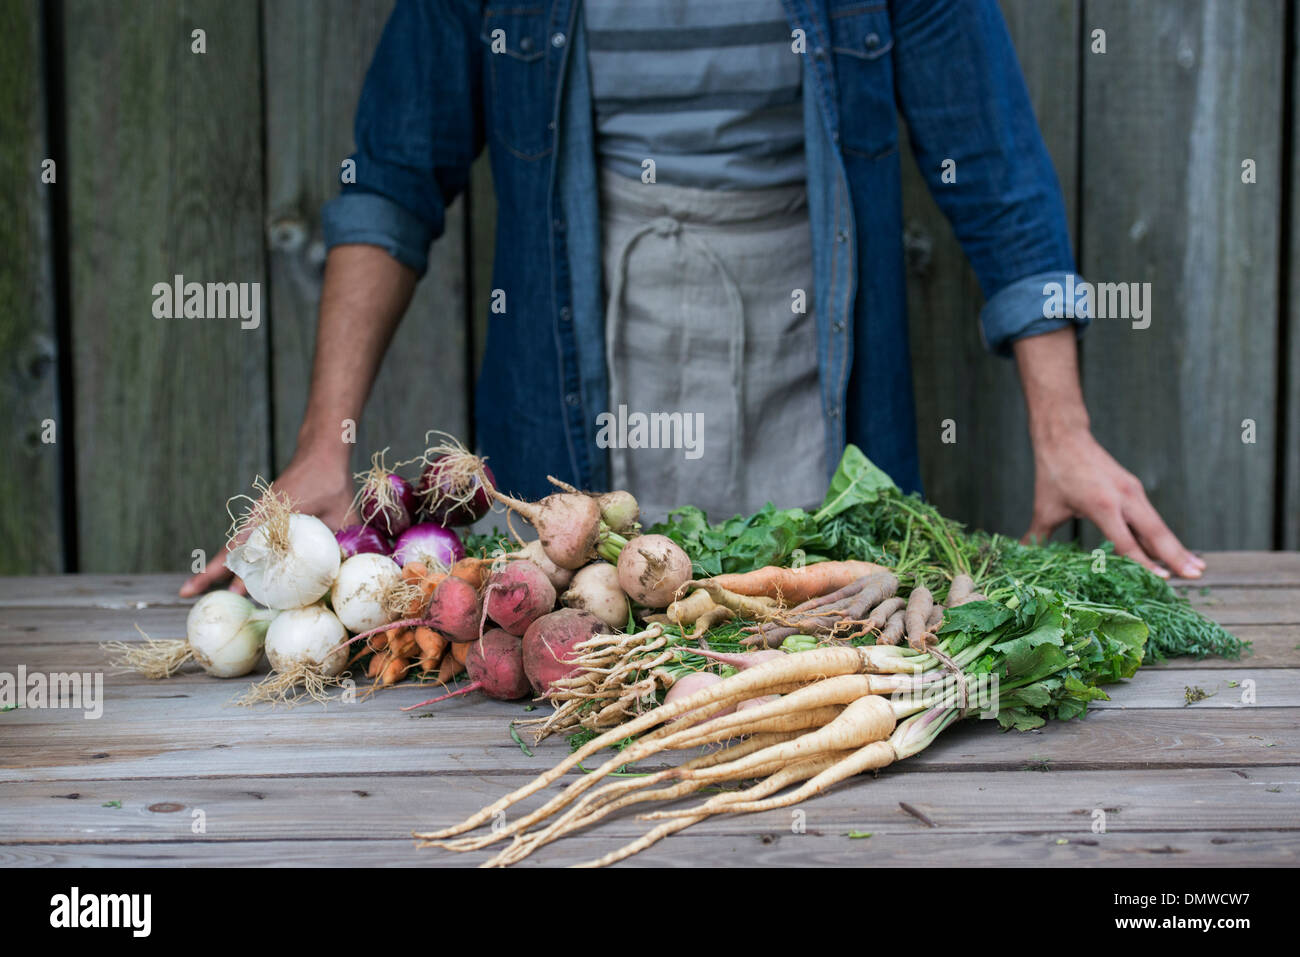 A man sorting freshly picked vegetables on a table. - Stock Image